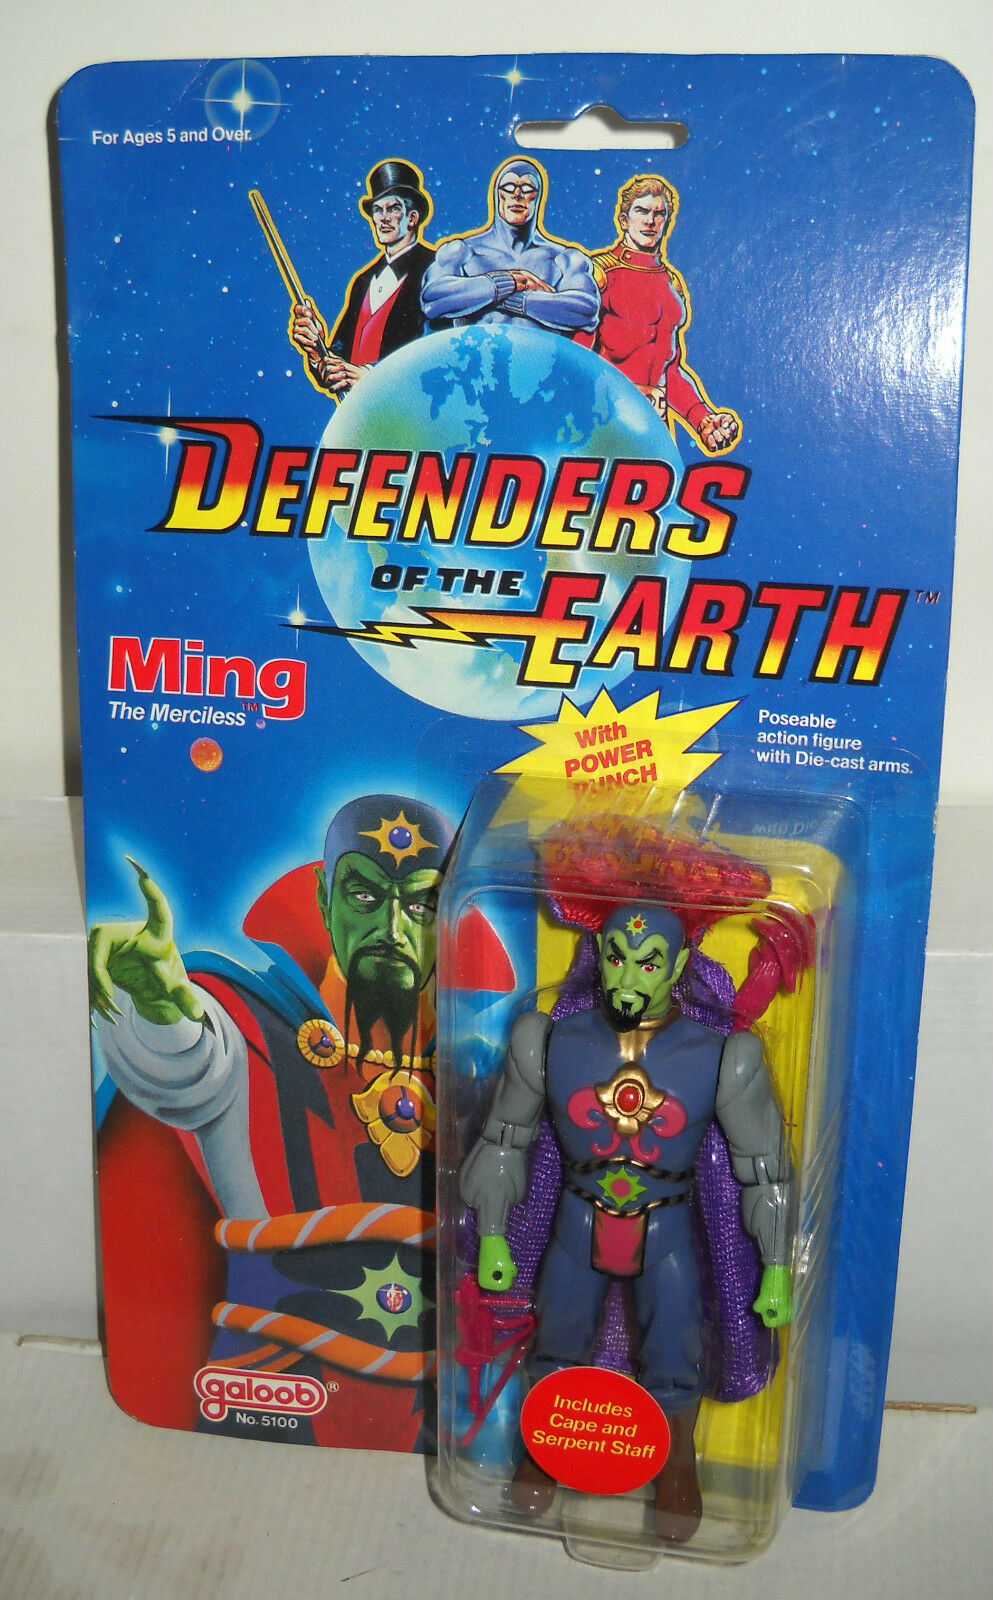 NRFC Vintage Galoob Defenders of the Earth Flash Ming the Merciless Figure